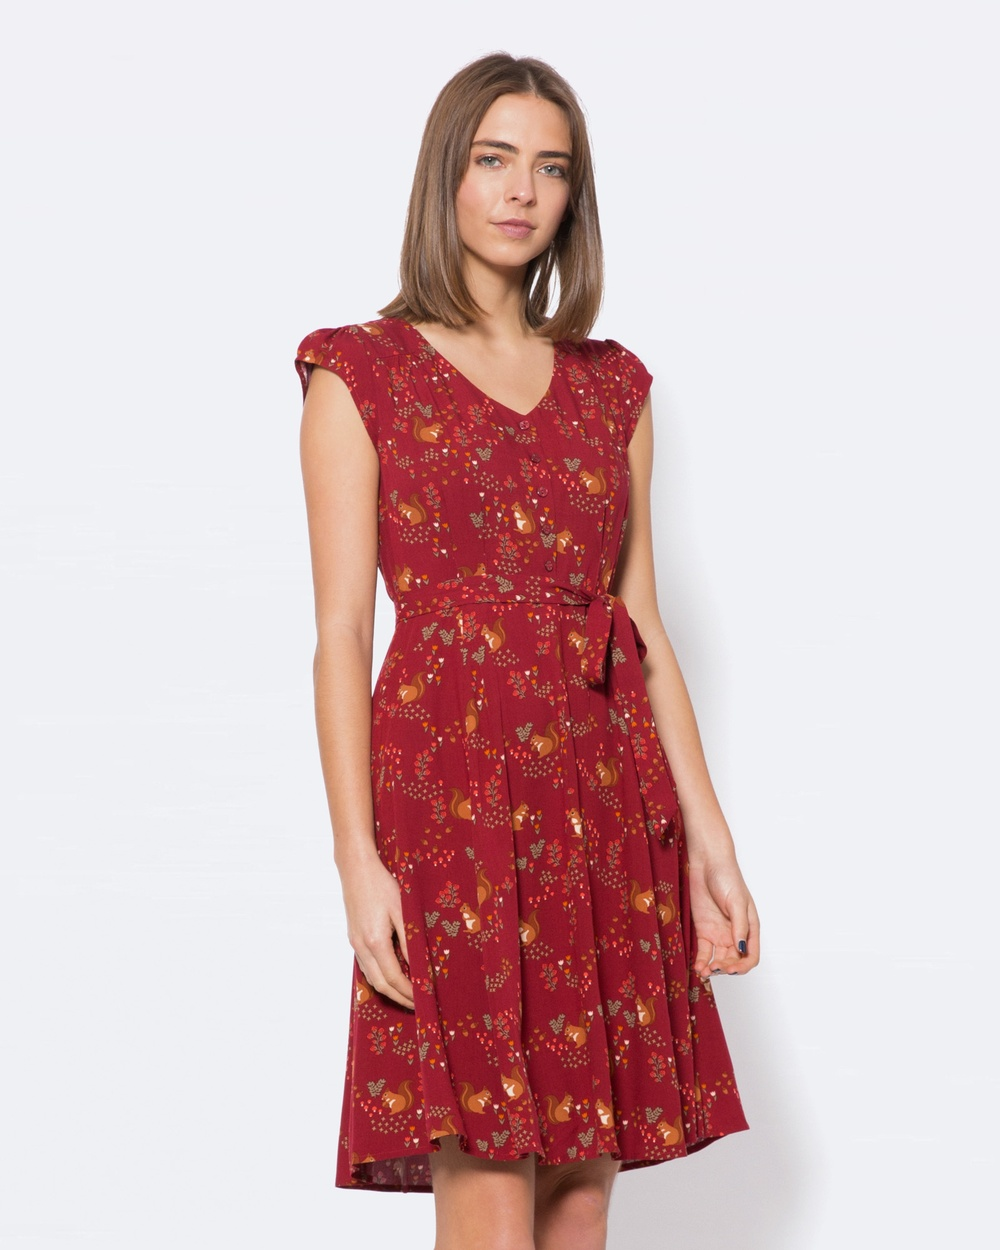 Princess Highway Squirrel Away Dress Dresses Red Squirrel Away Dress